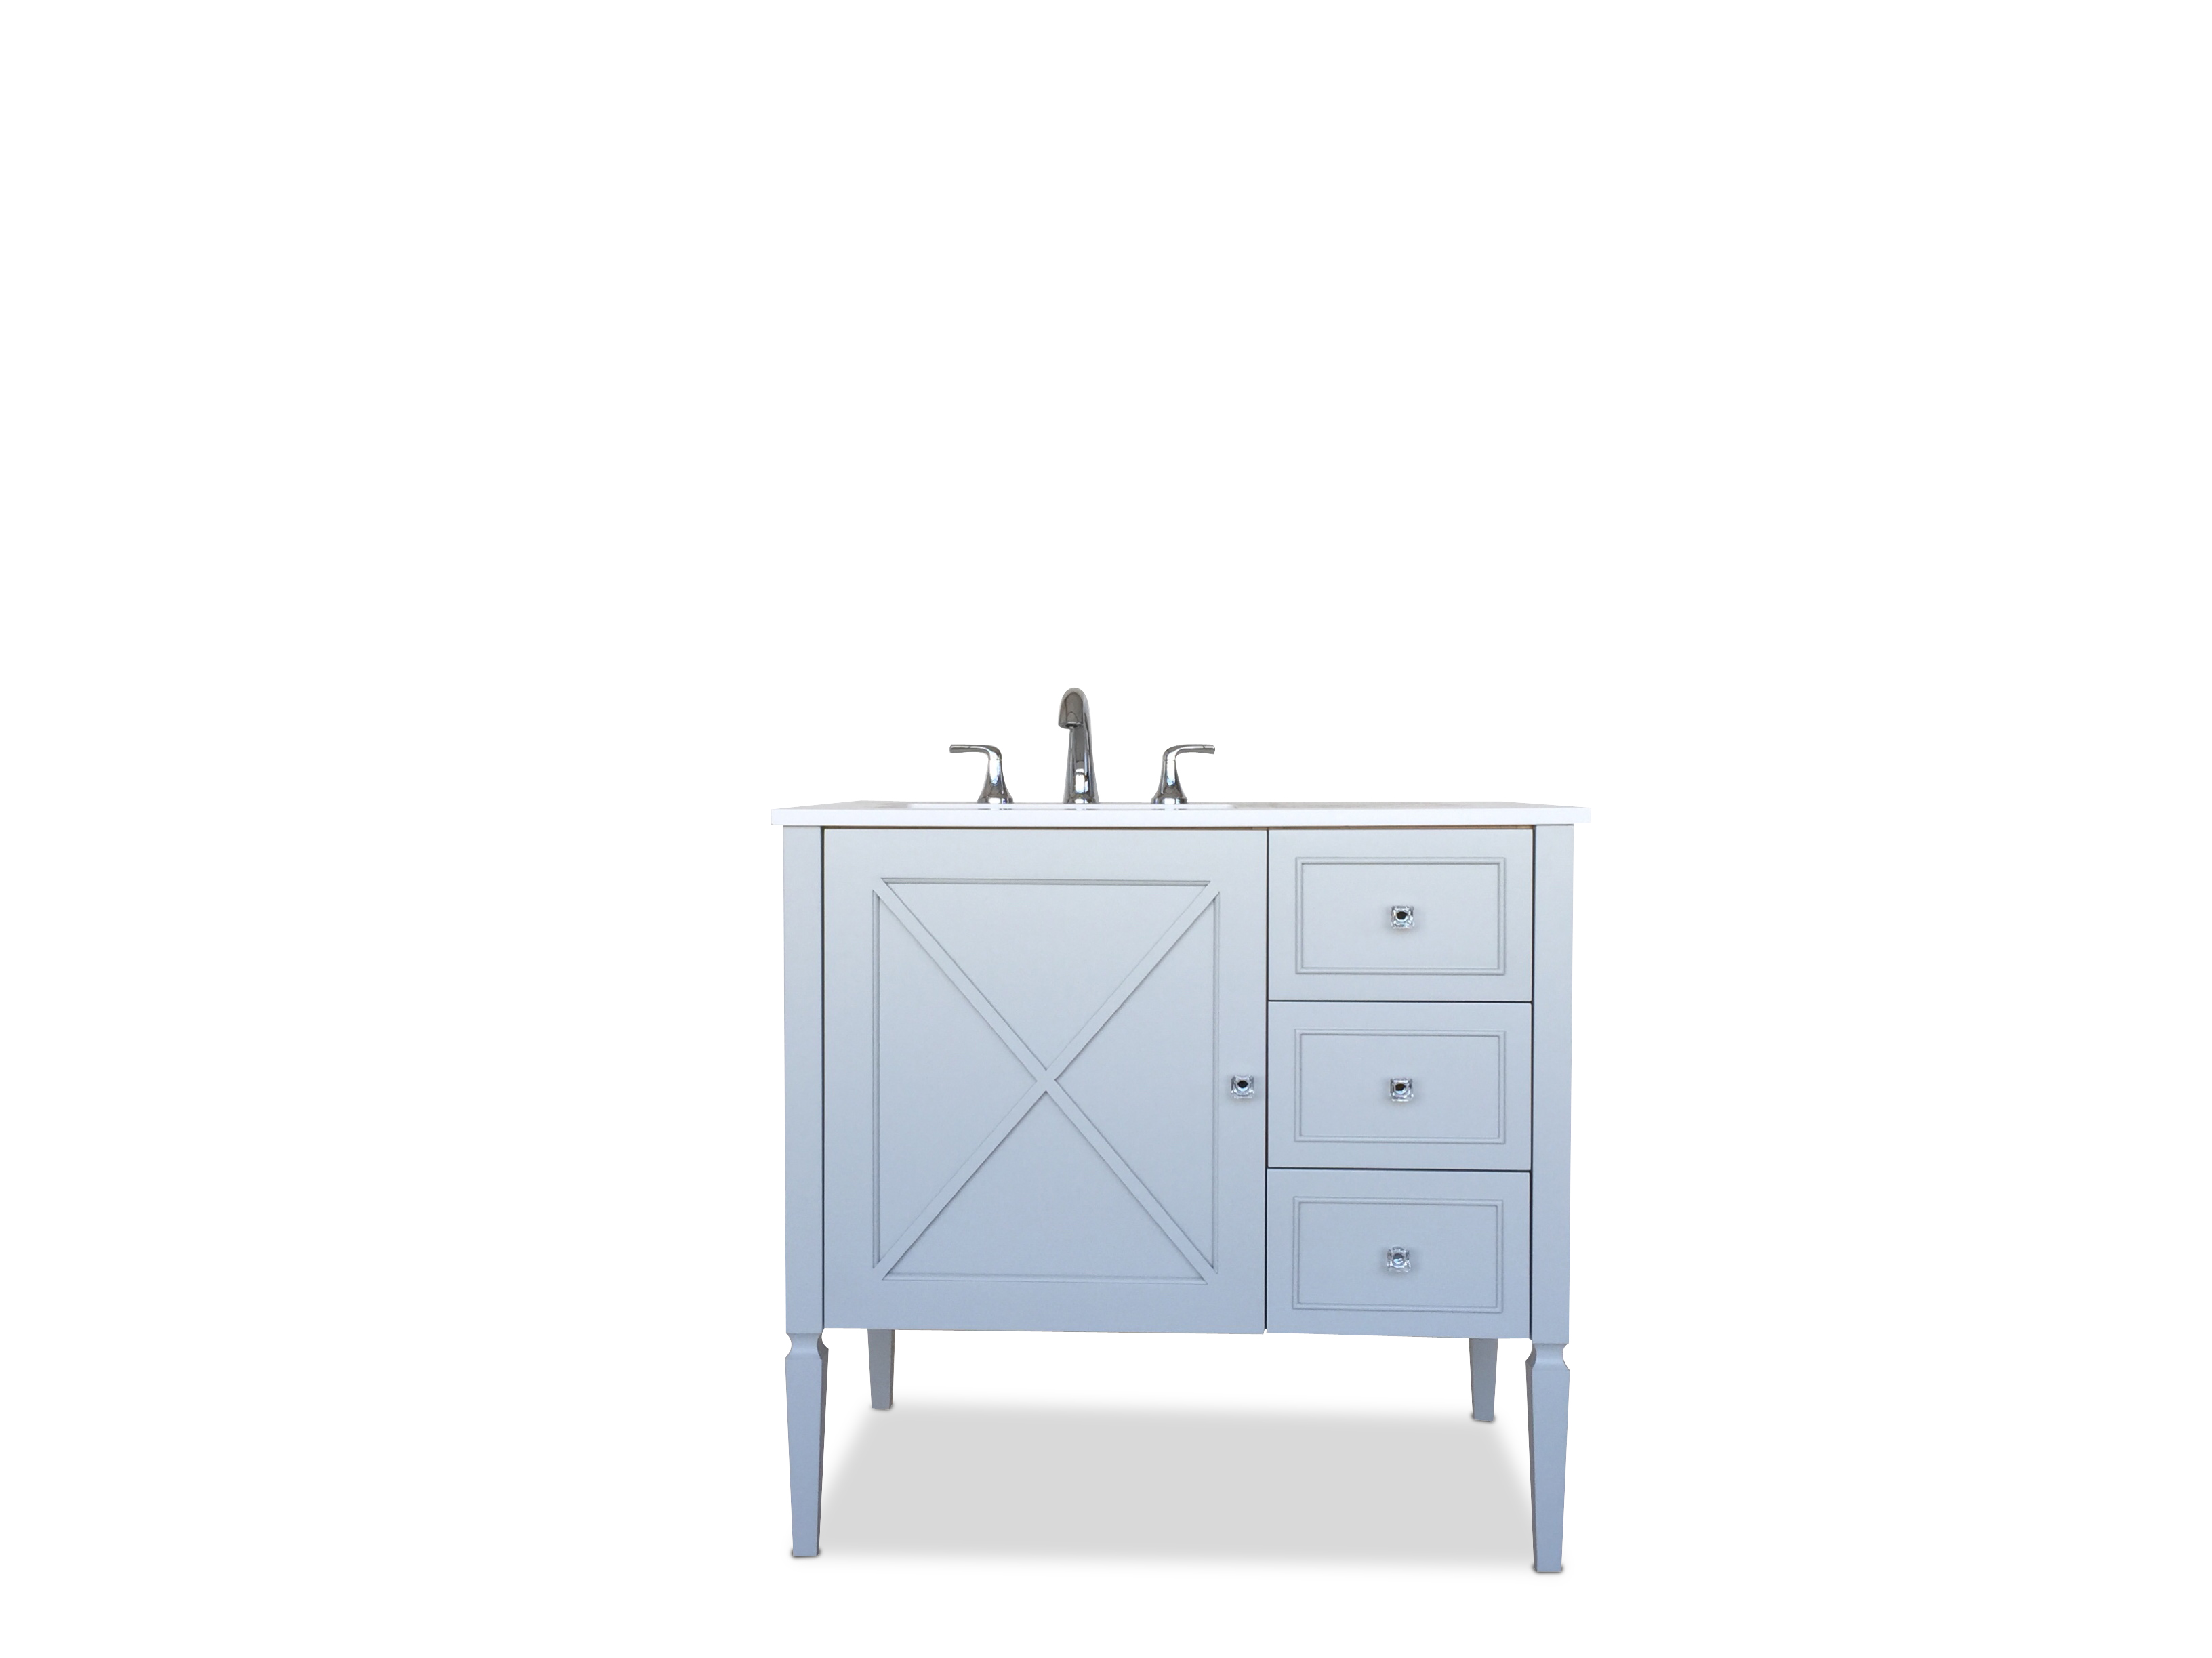 vanities depot vessel with double cabinets imports for attractive regard single grand amazing white vanity sink modern bathroom jwh contemporary lune to home